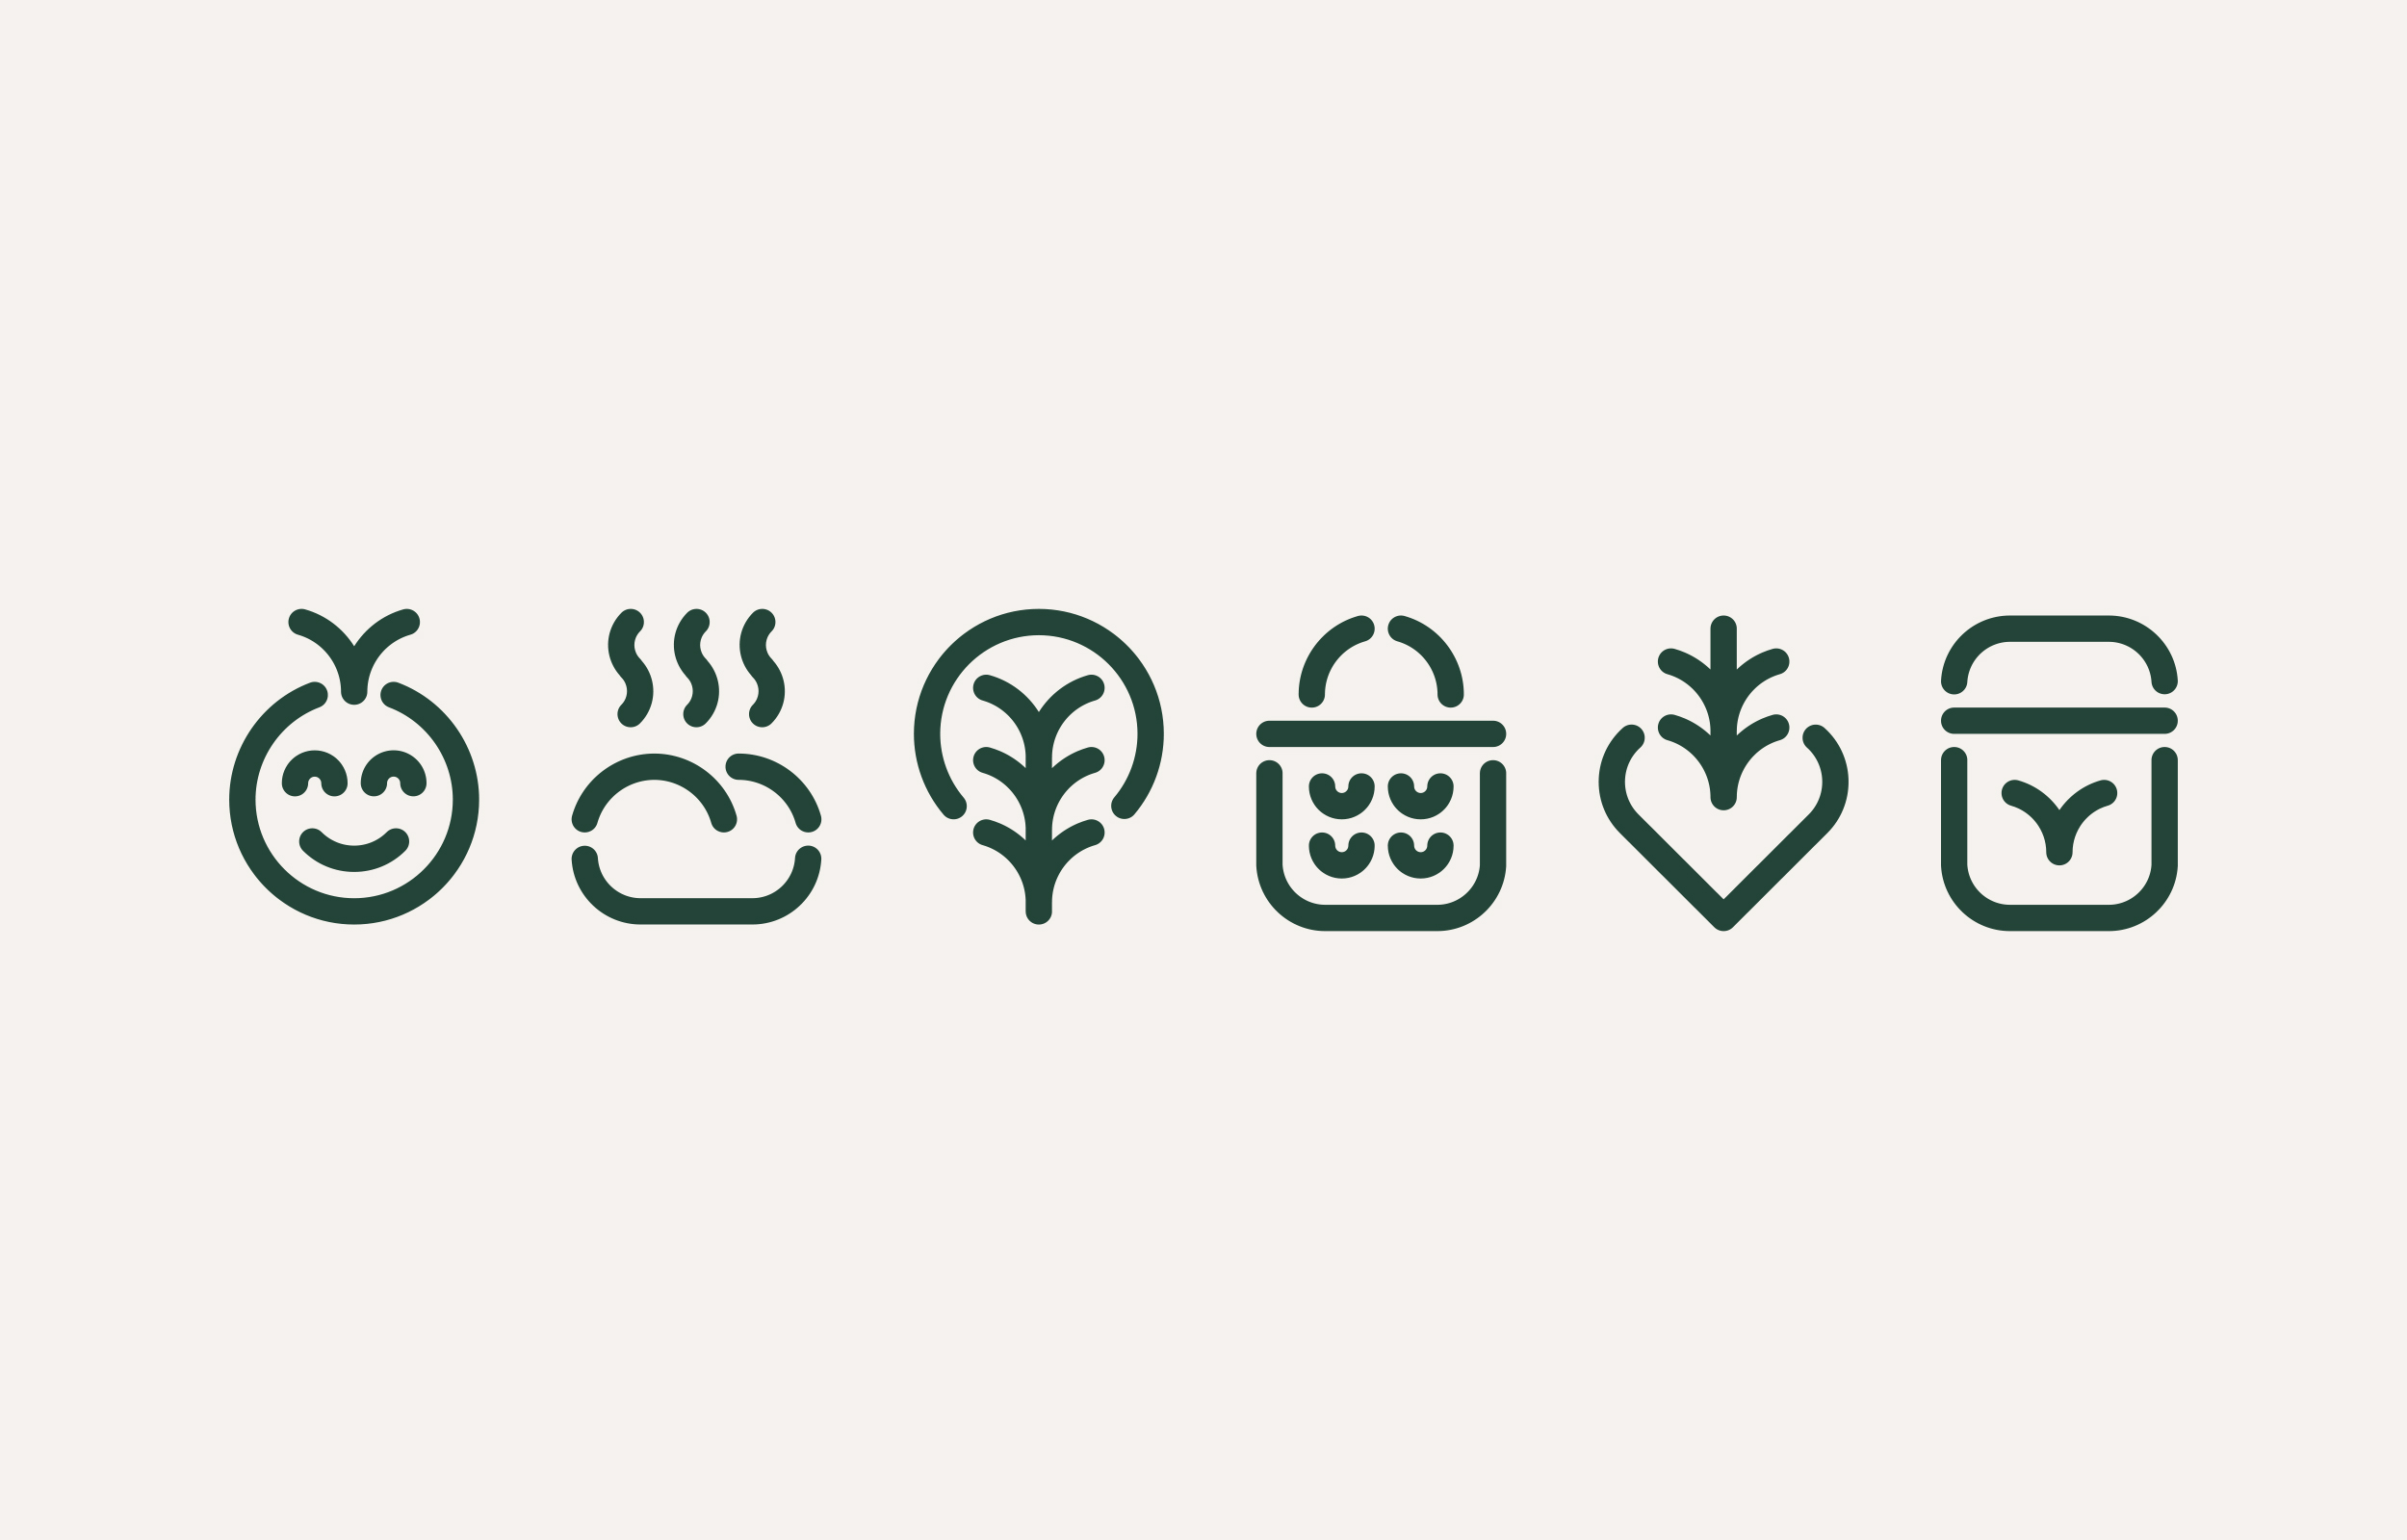 Diferente_BetterBreads_Icon_Set